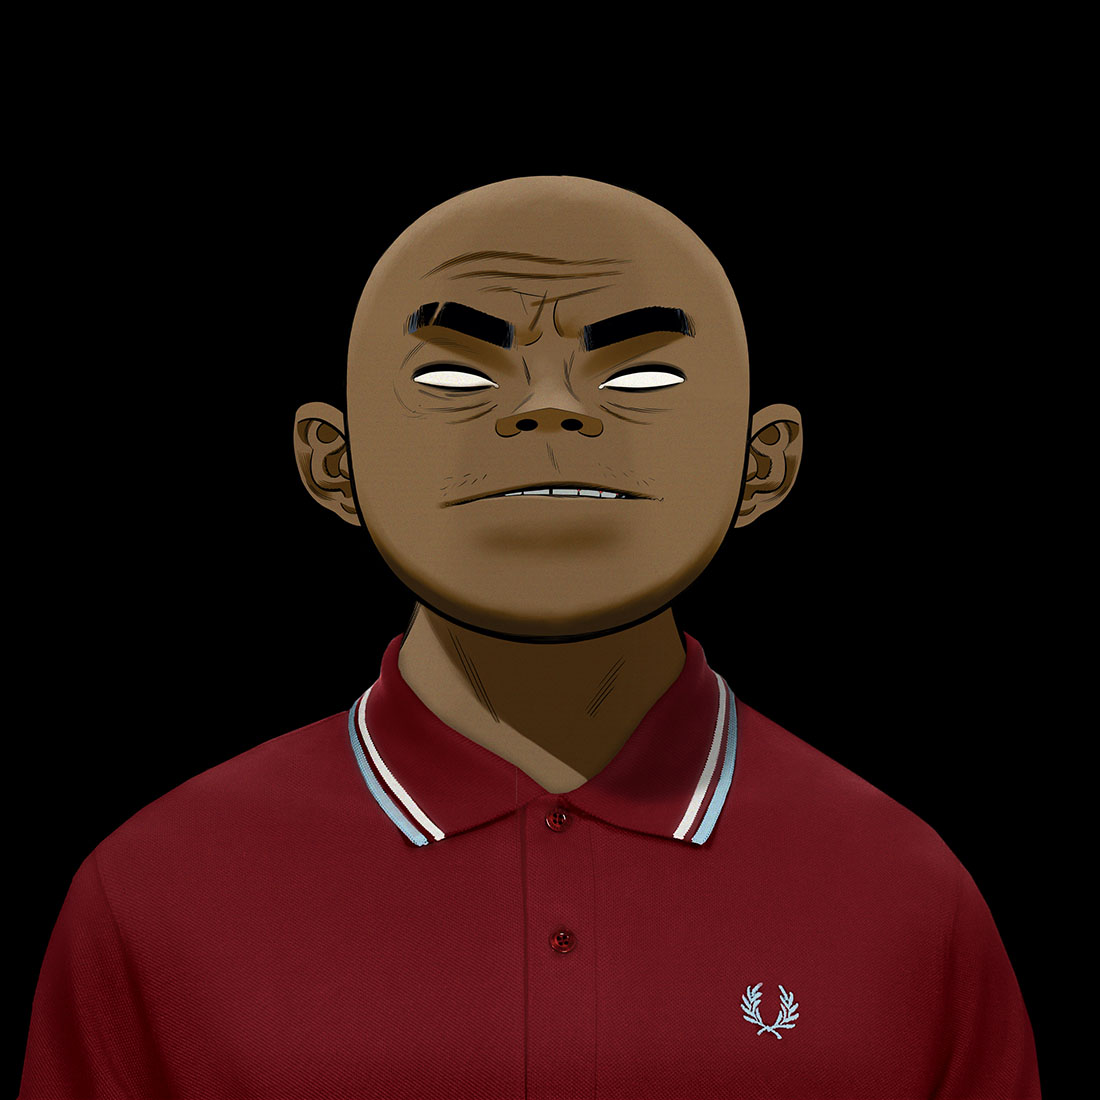 Fred Perry x Gorillaz - Russel Hobbs